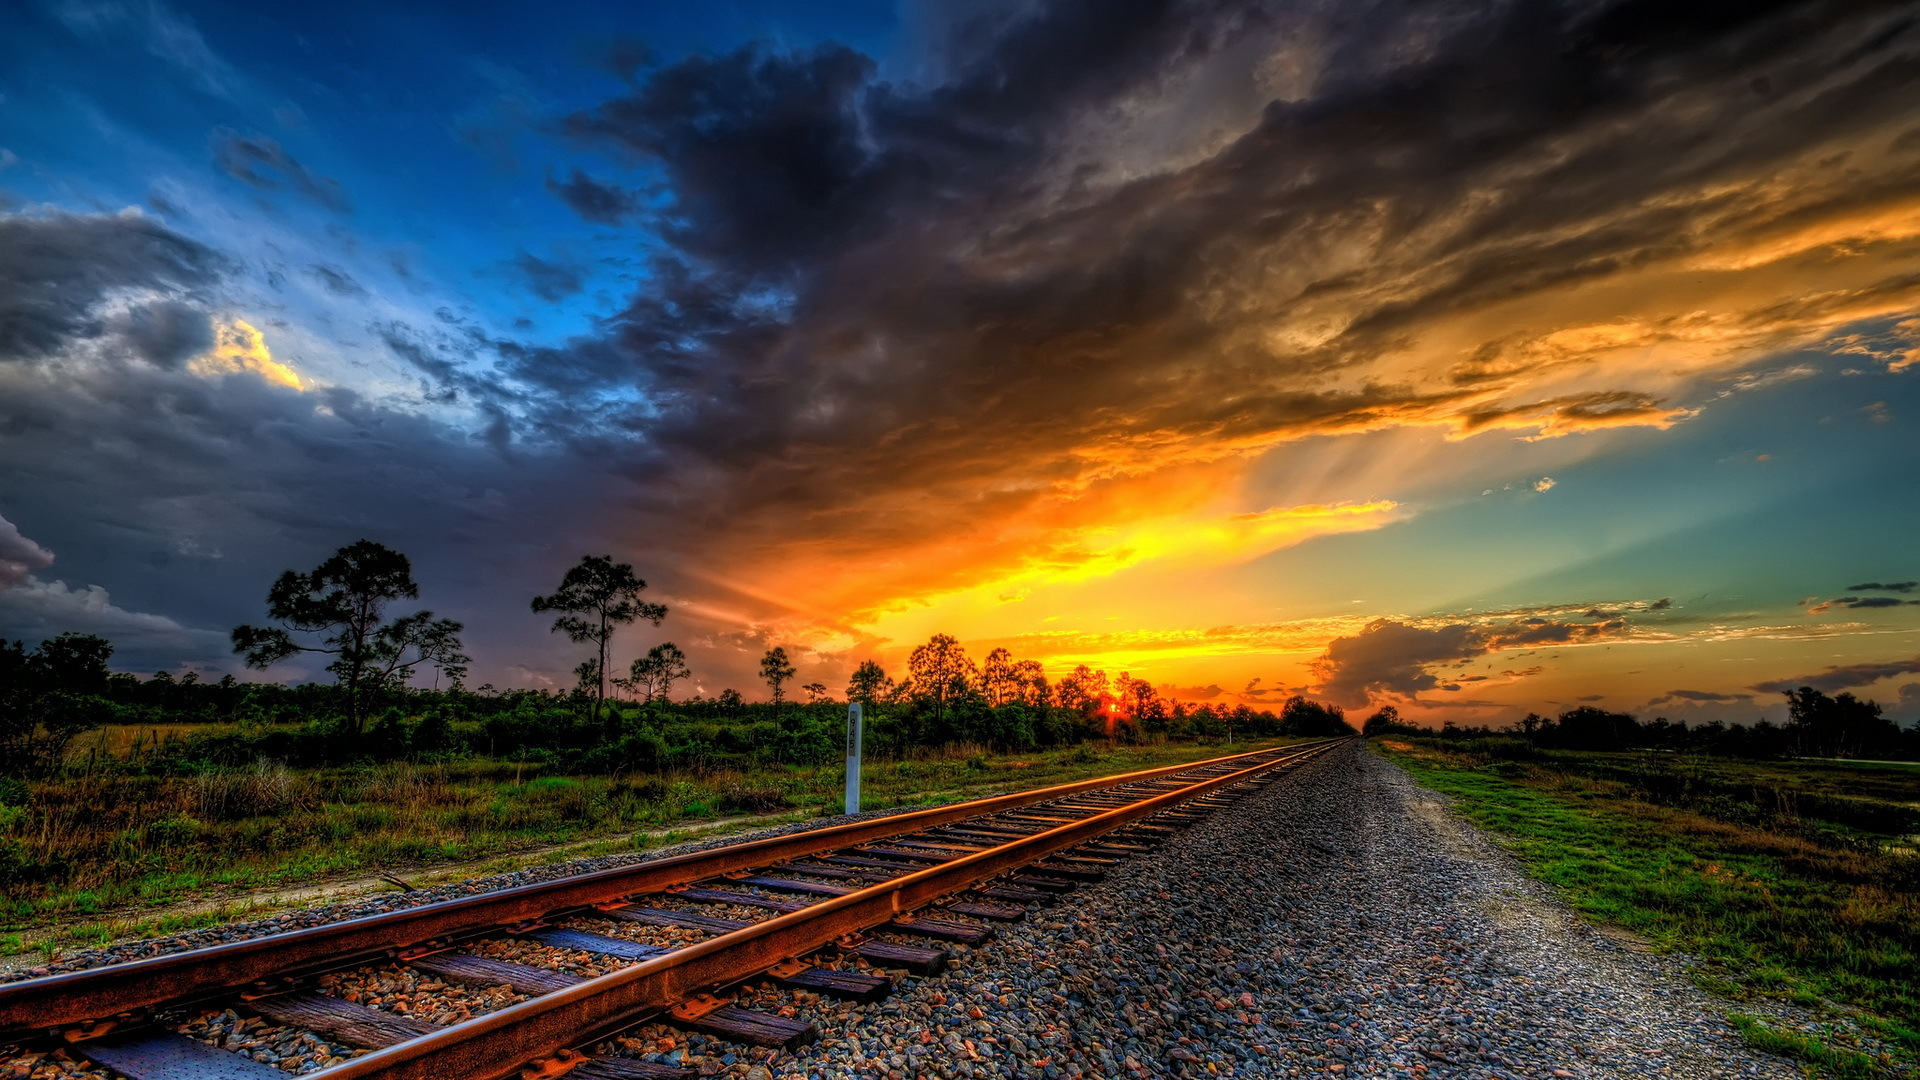 wonderful sunset on train tracks hdr hd desktop background